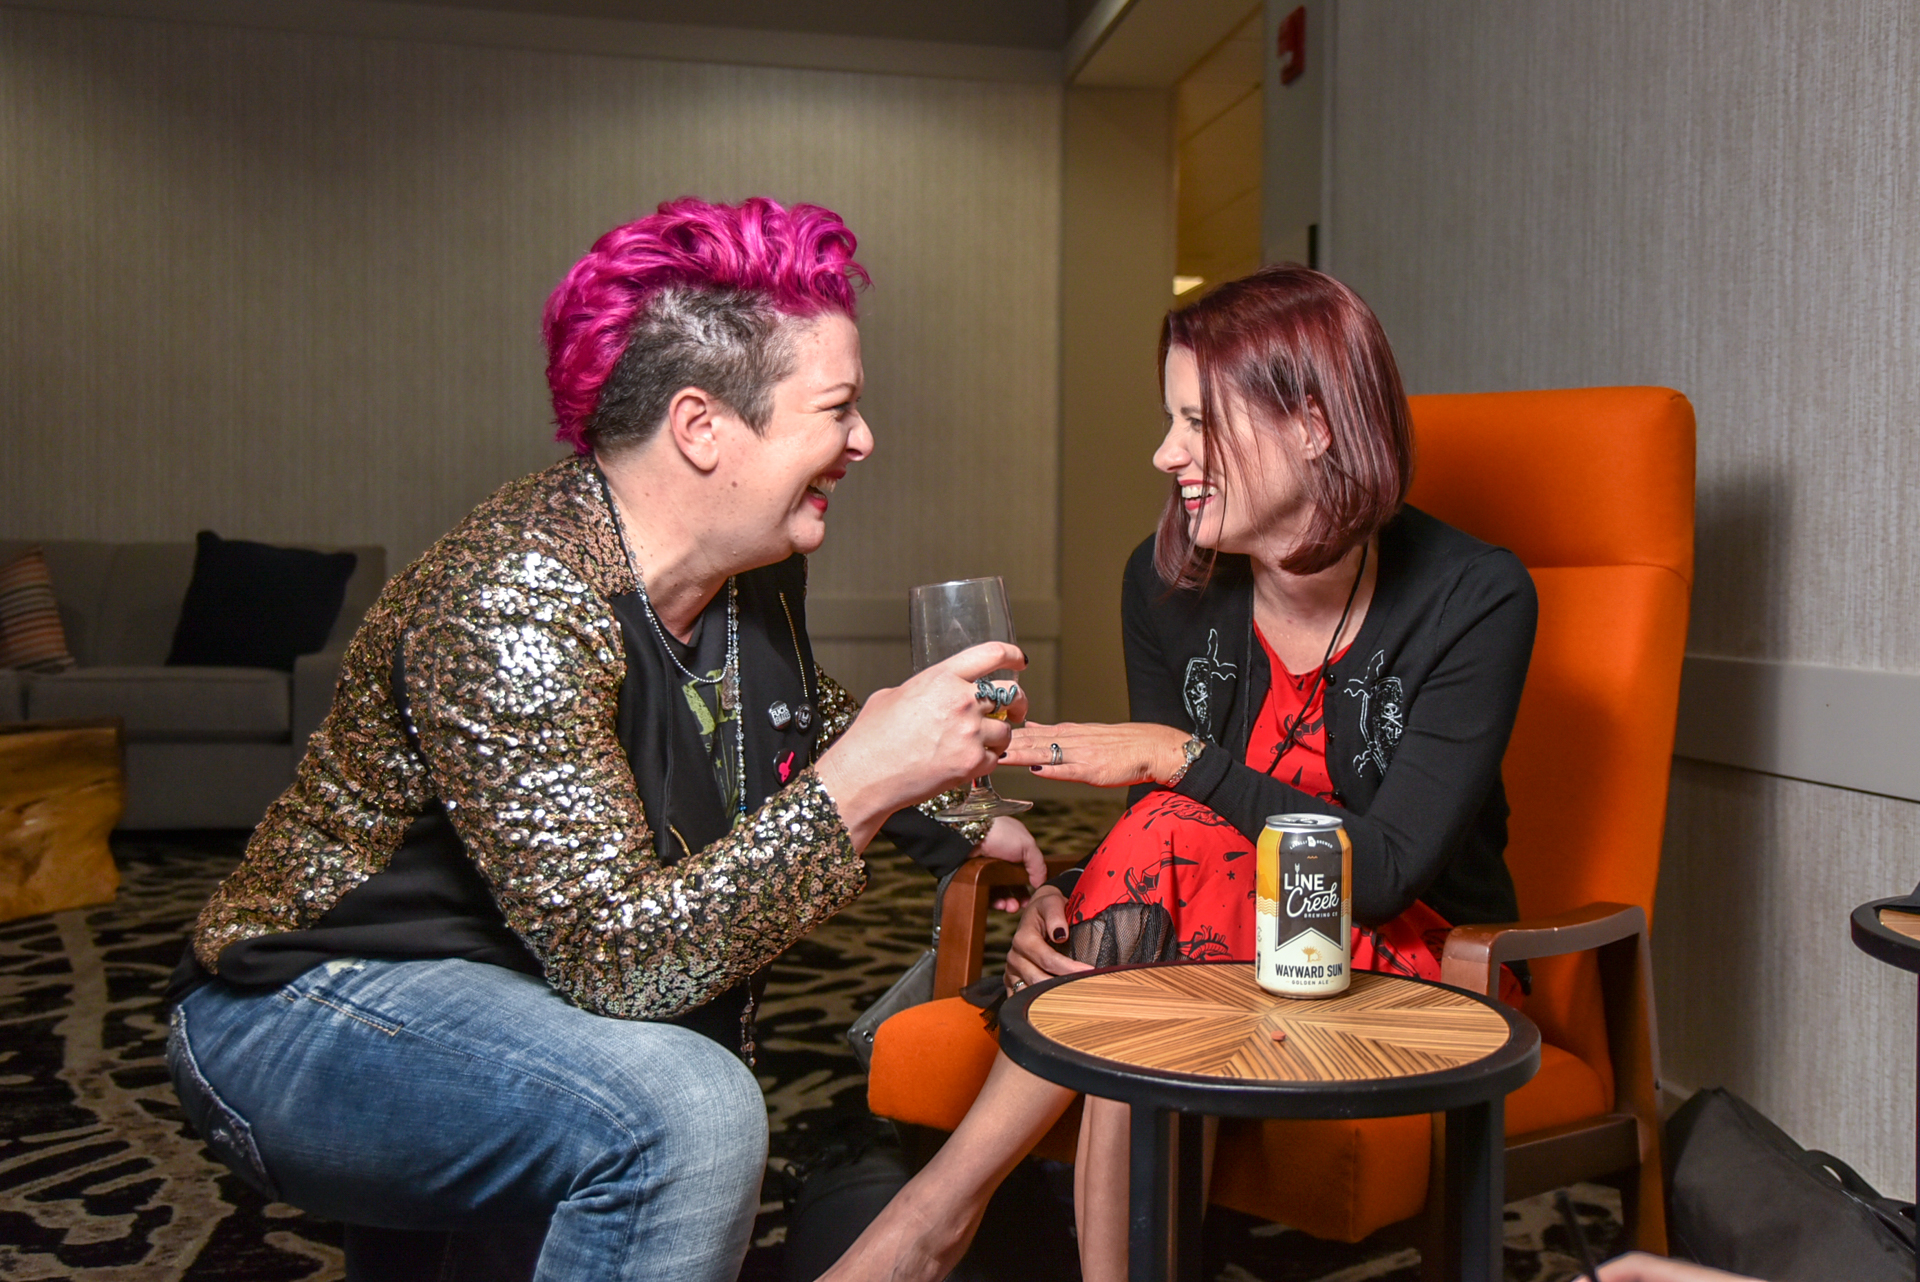 Vanessa Ionta Wright (left) and Melissa Dewey (right) chat horror at WIHFF '18.